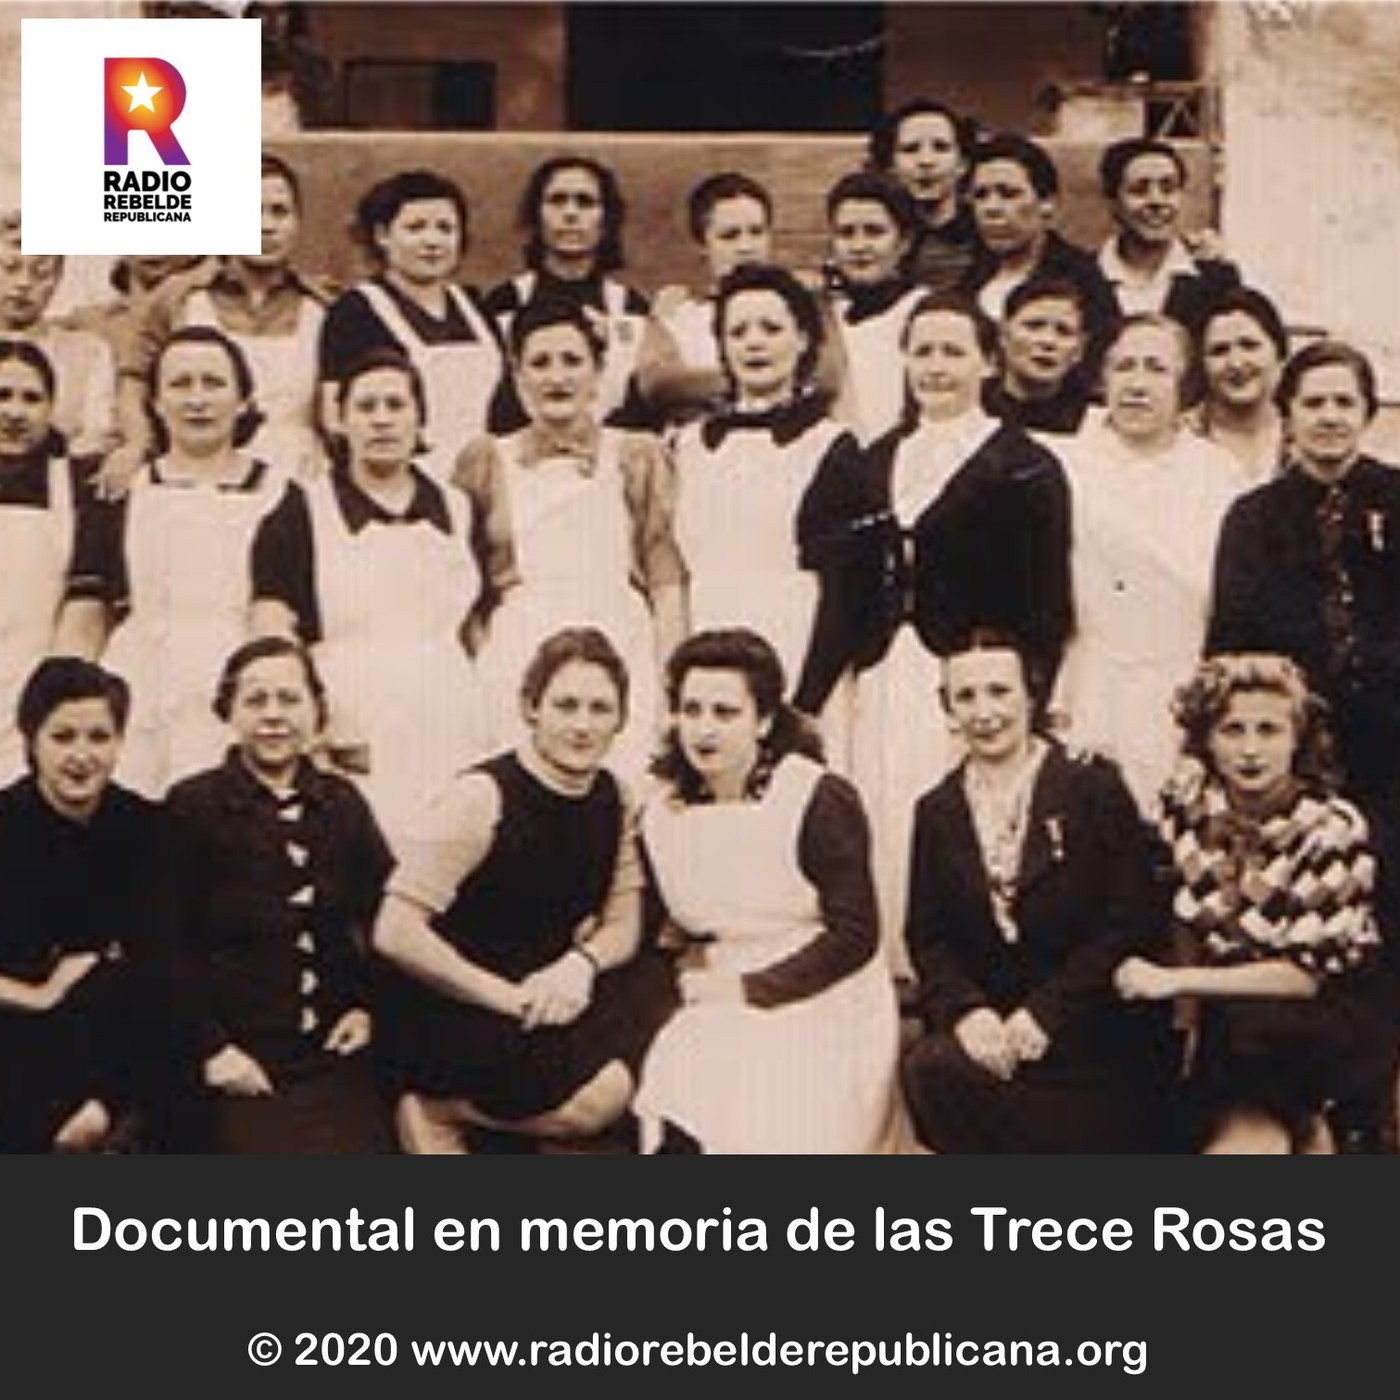 Documental en memoria de las Trece Rosas